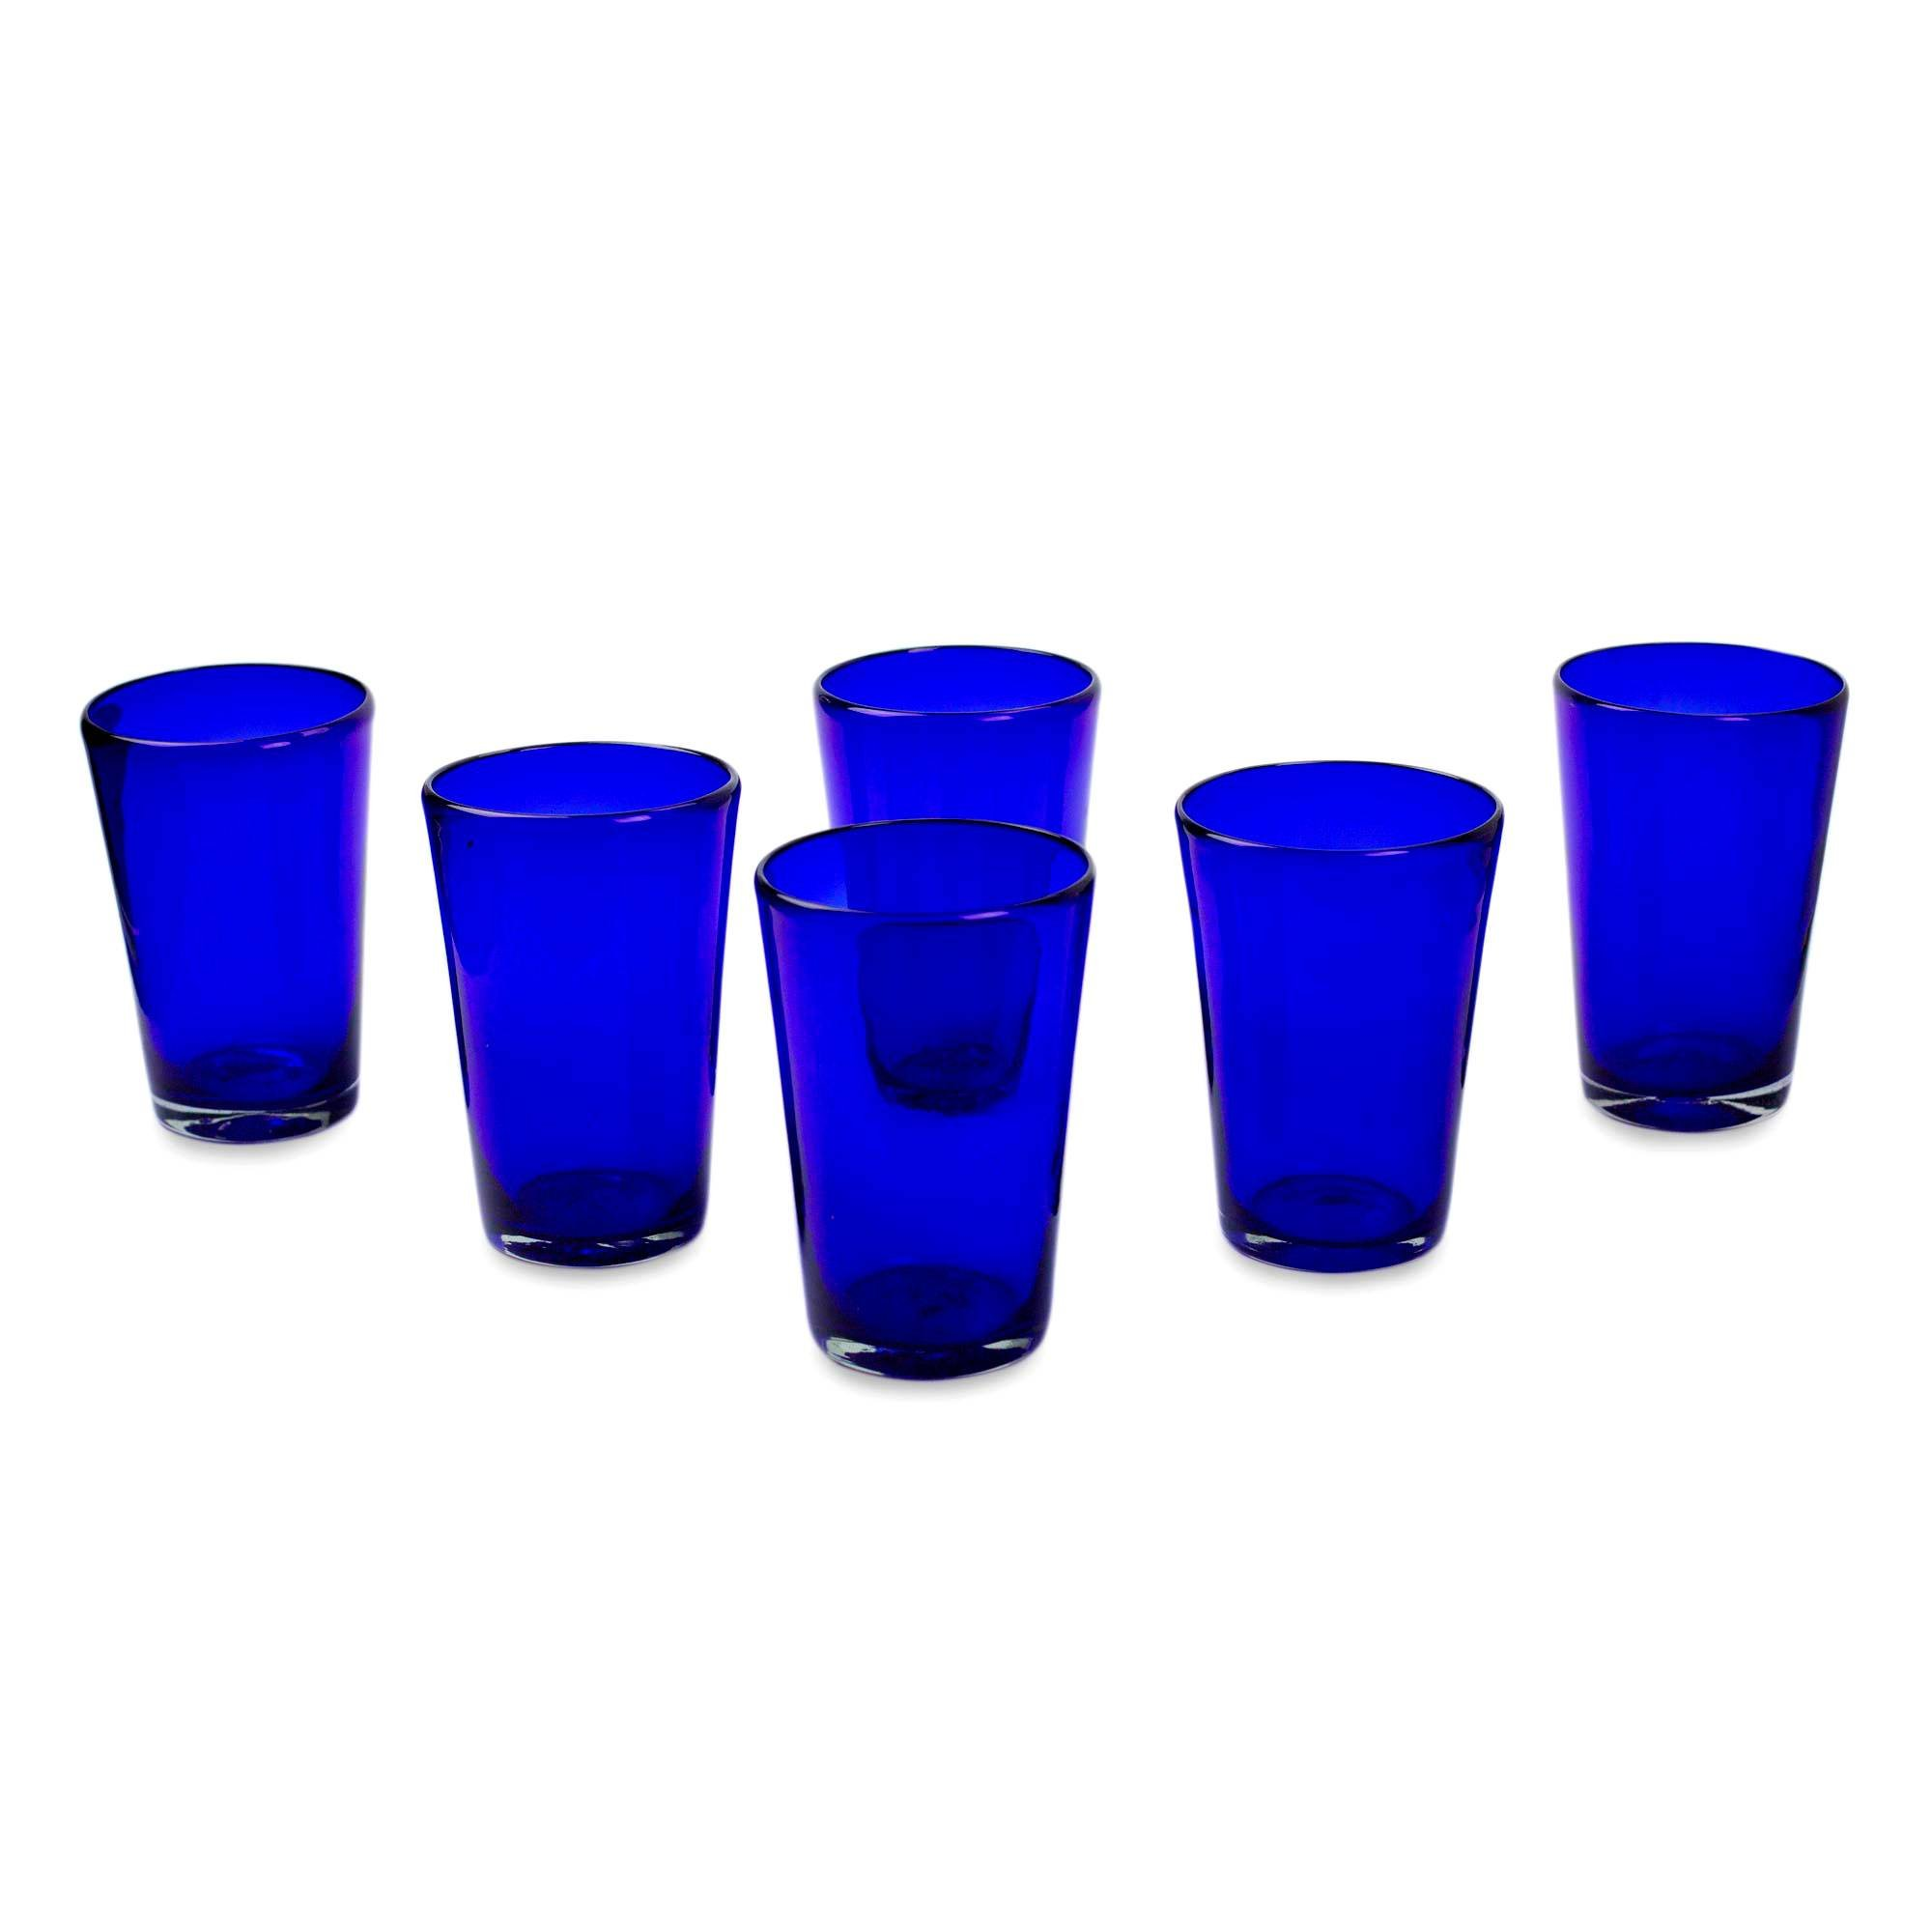 NOVICA Artisan Crafted Hand Blown Blue Recycled Glass Water Glasses, 16 oz. 'Cobalt Angles' (set of 6) - 56622